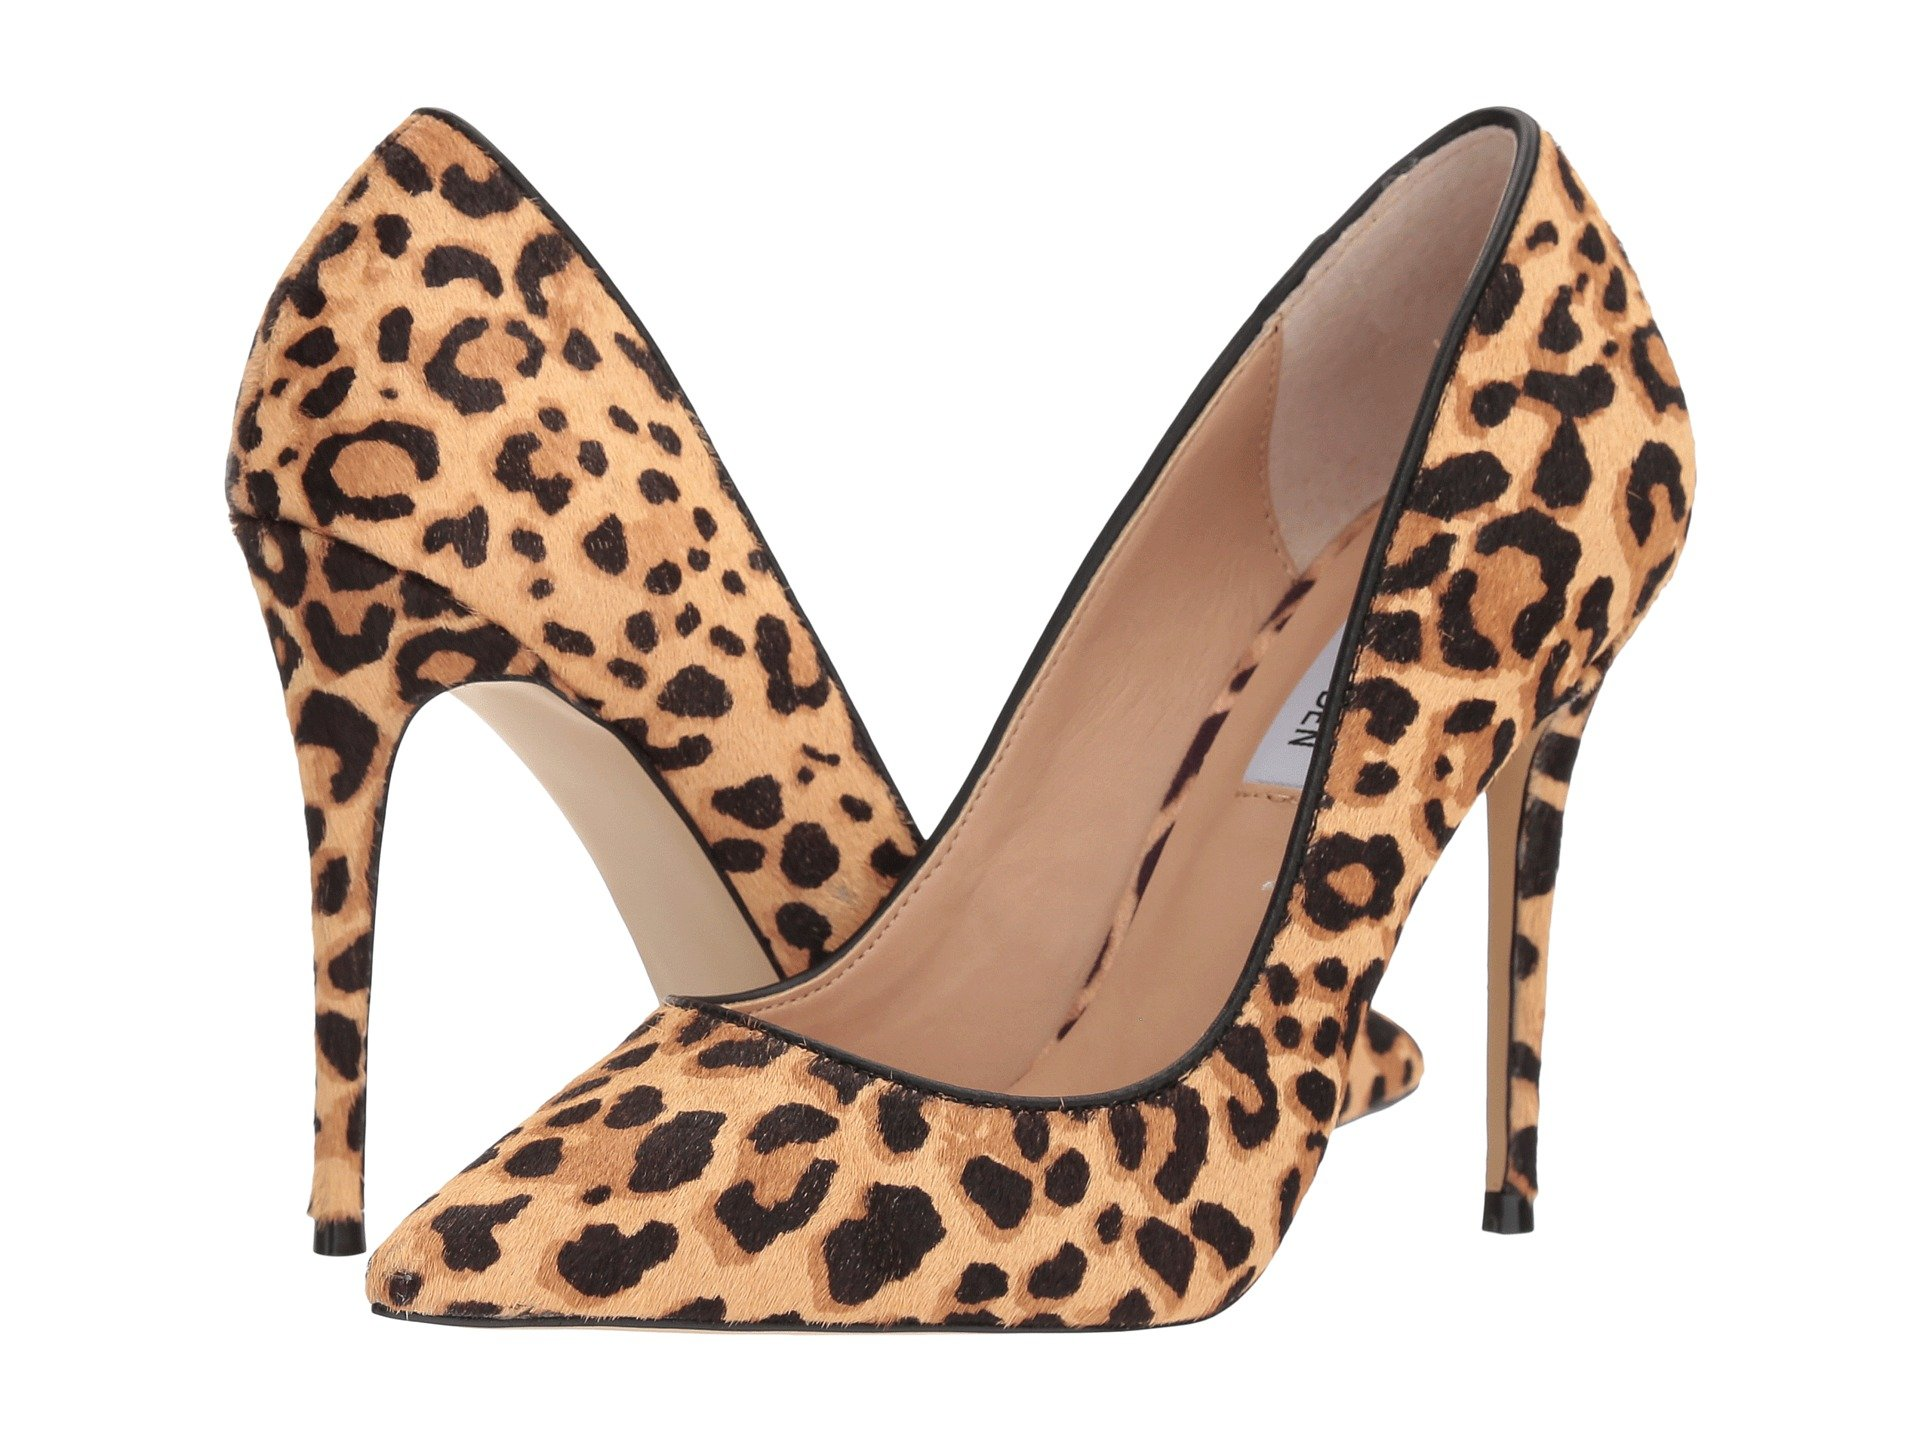 17c98477ea9 Women's Steve Madden Heels + FREE SHIPPING | Shoes | Zappos.com